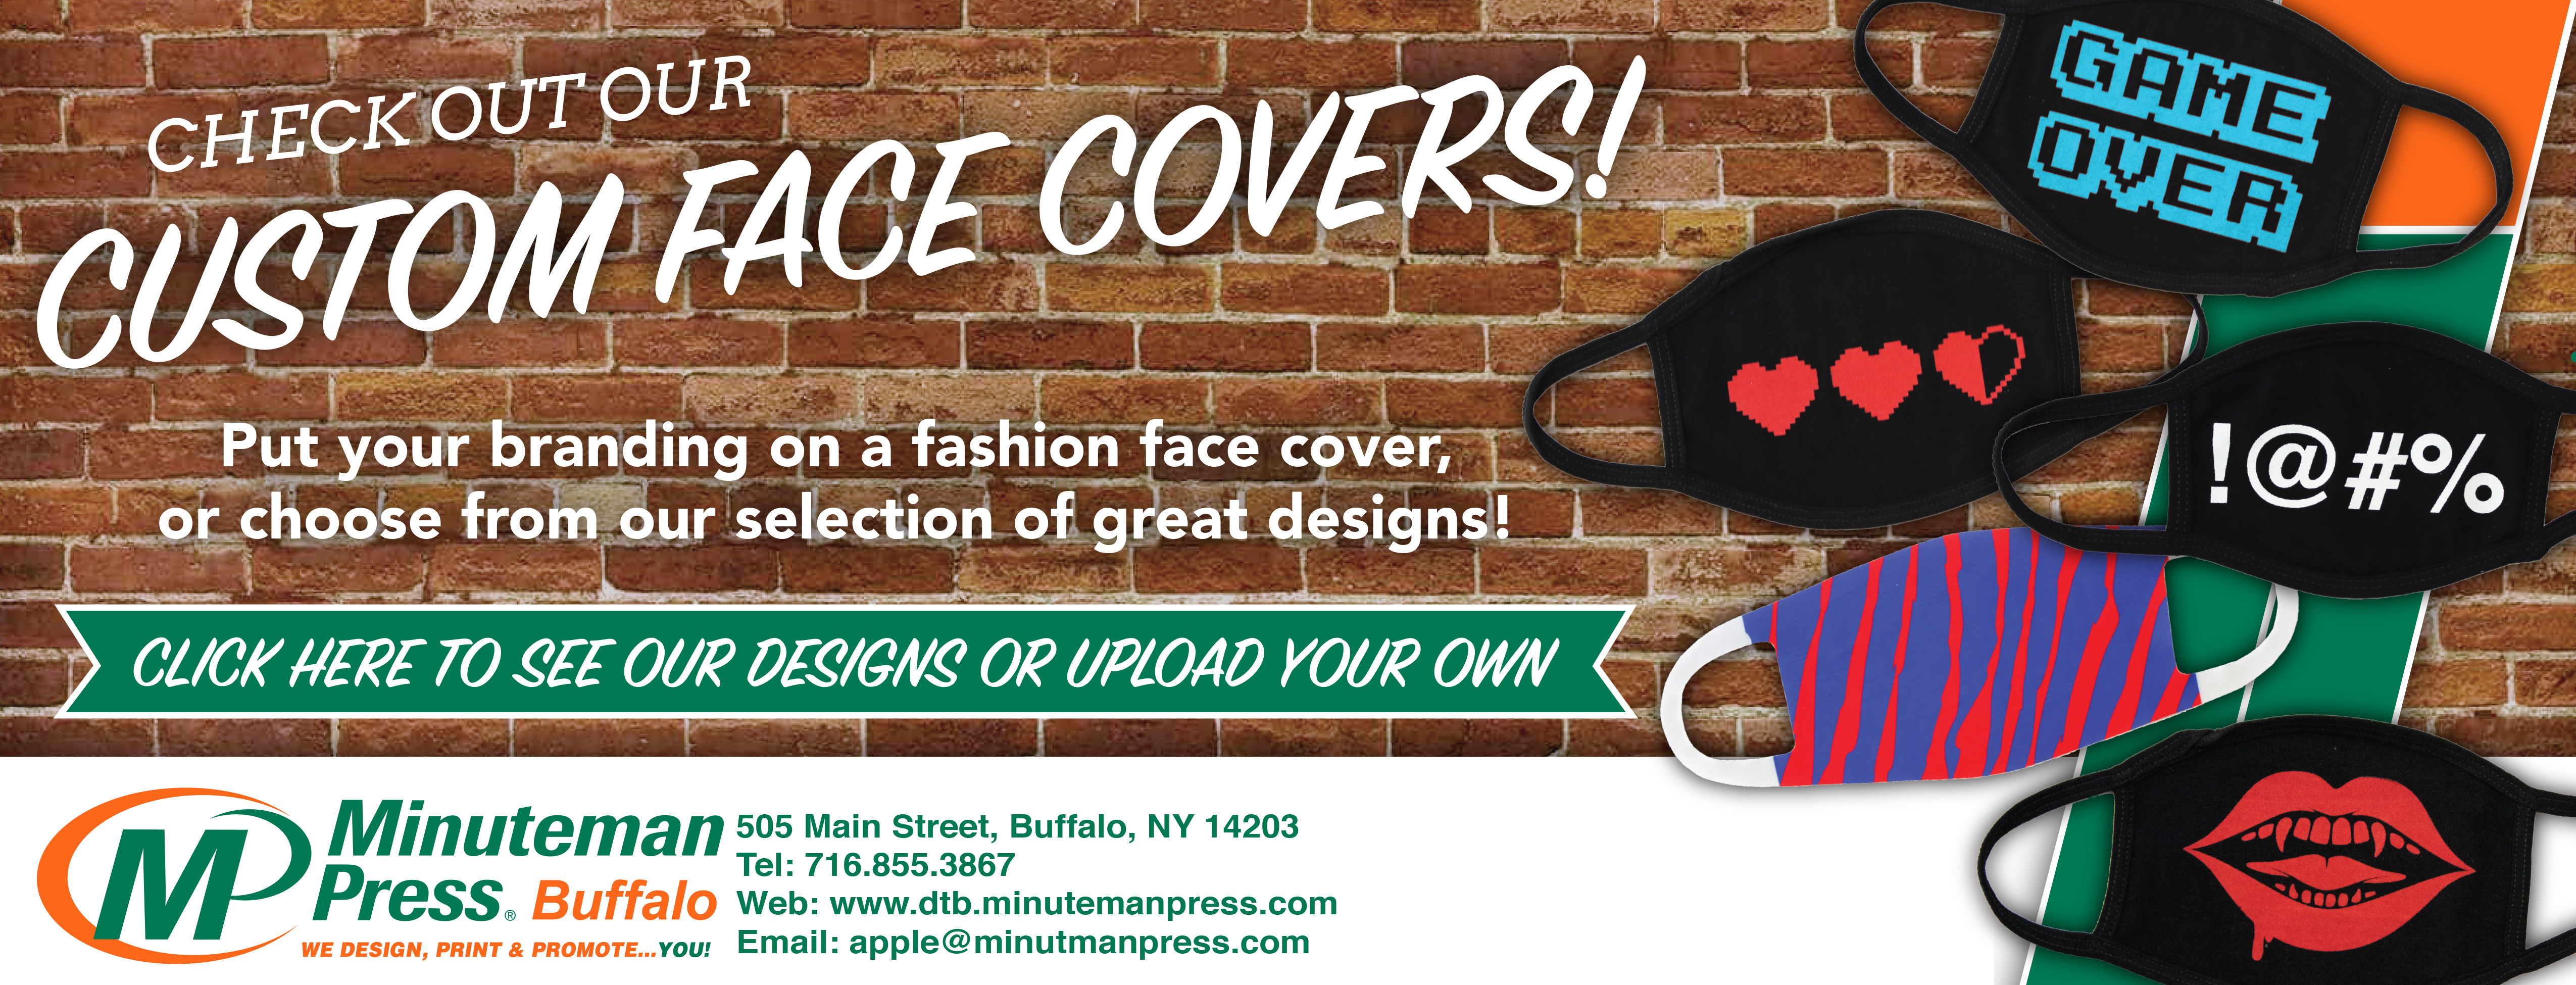 Custom Face Covers